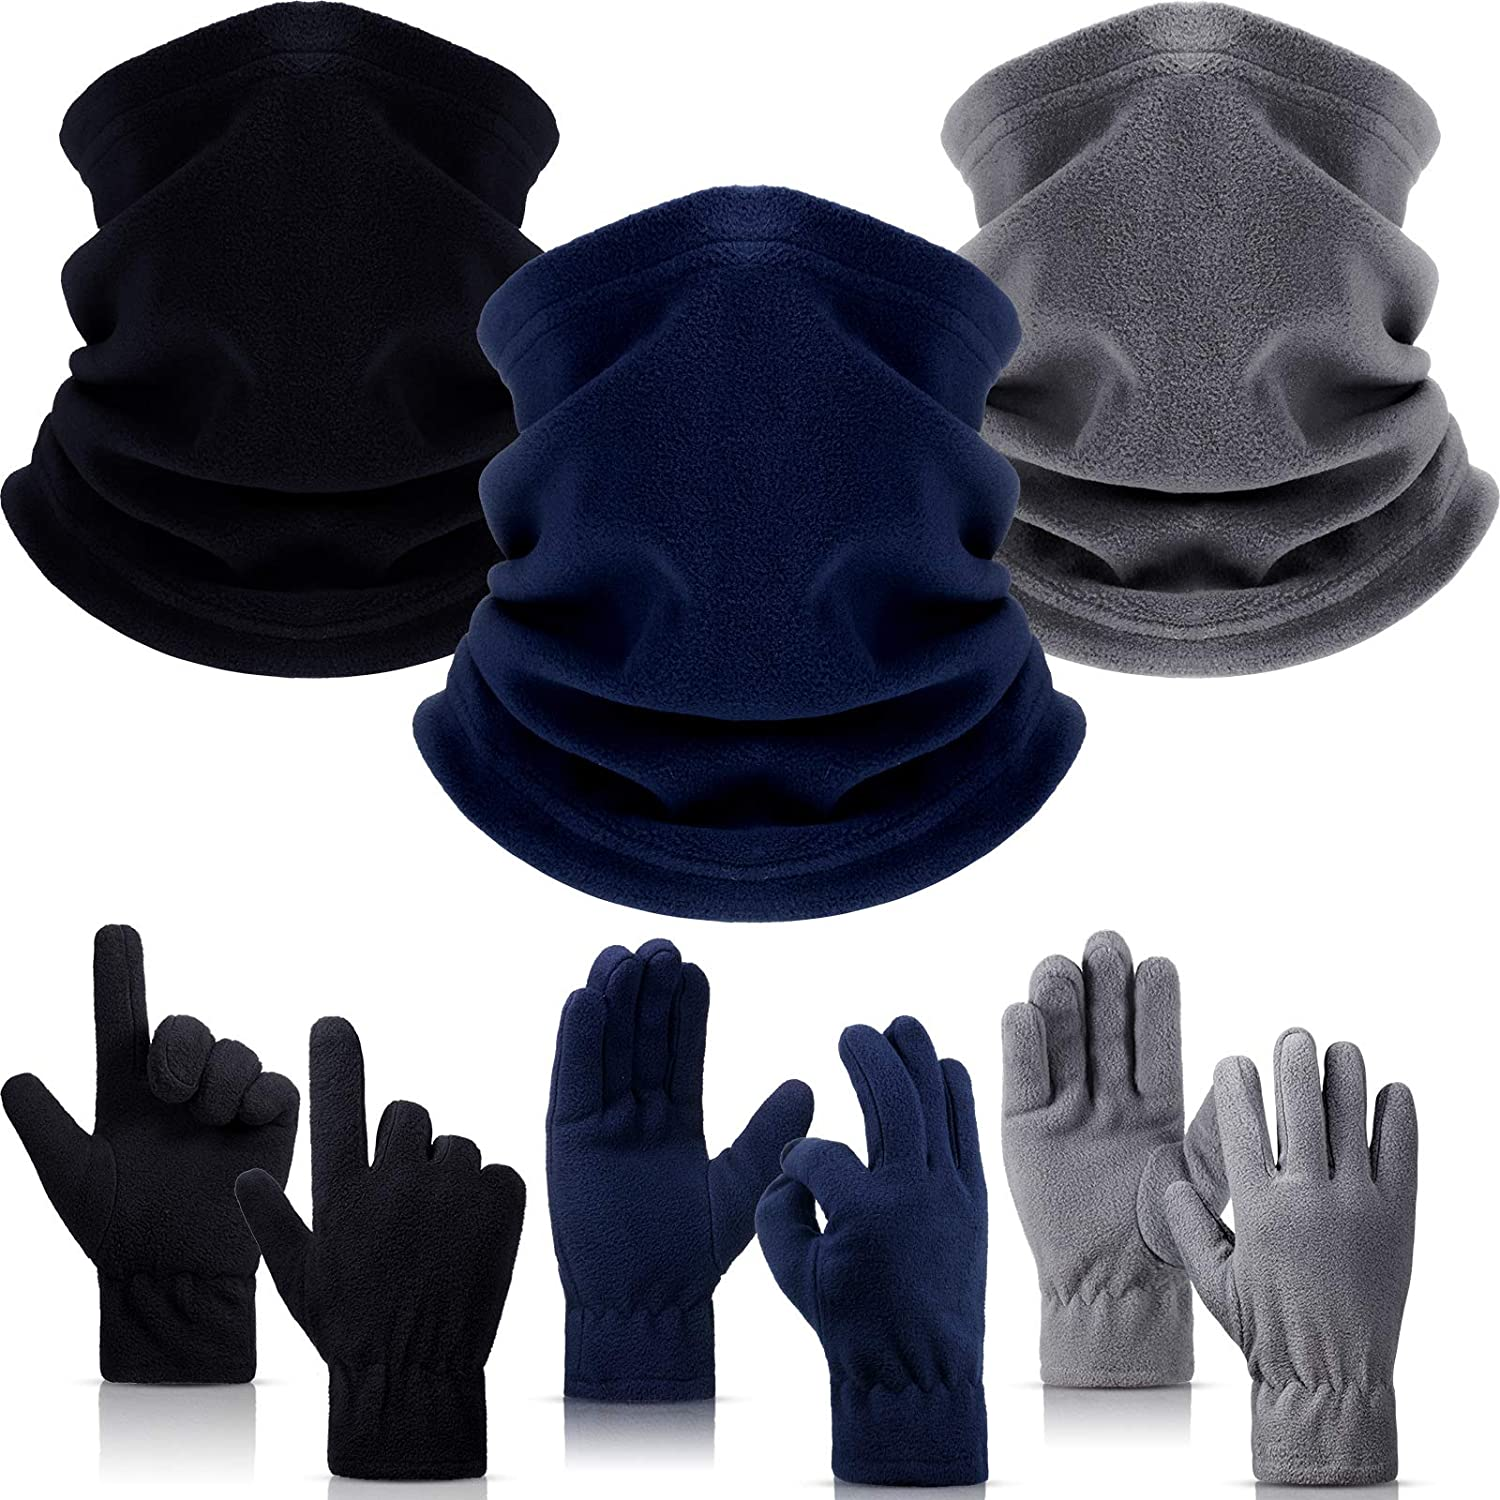 6 Pieces Neck Warmer and Gloves Set Fleece Anti-Pilling Neck Gaiter Flexible Tube Scarf Thermal Gloves Unisex and Multi-functional for Wind-proof Dust-proof Sports and Leisure